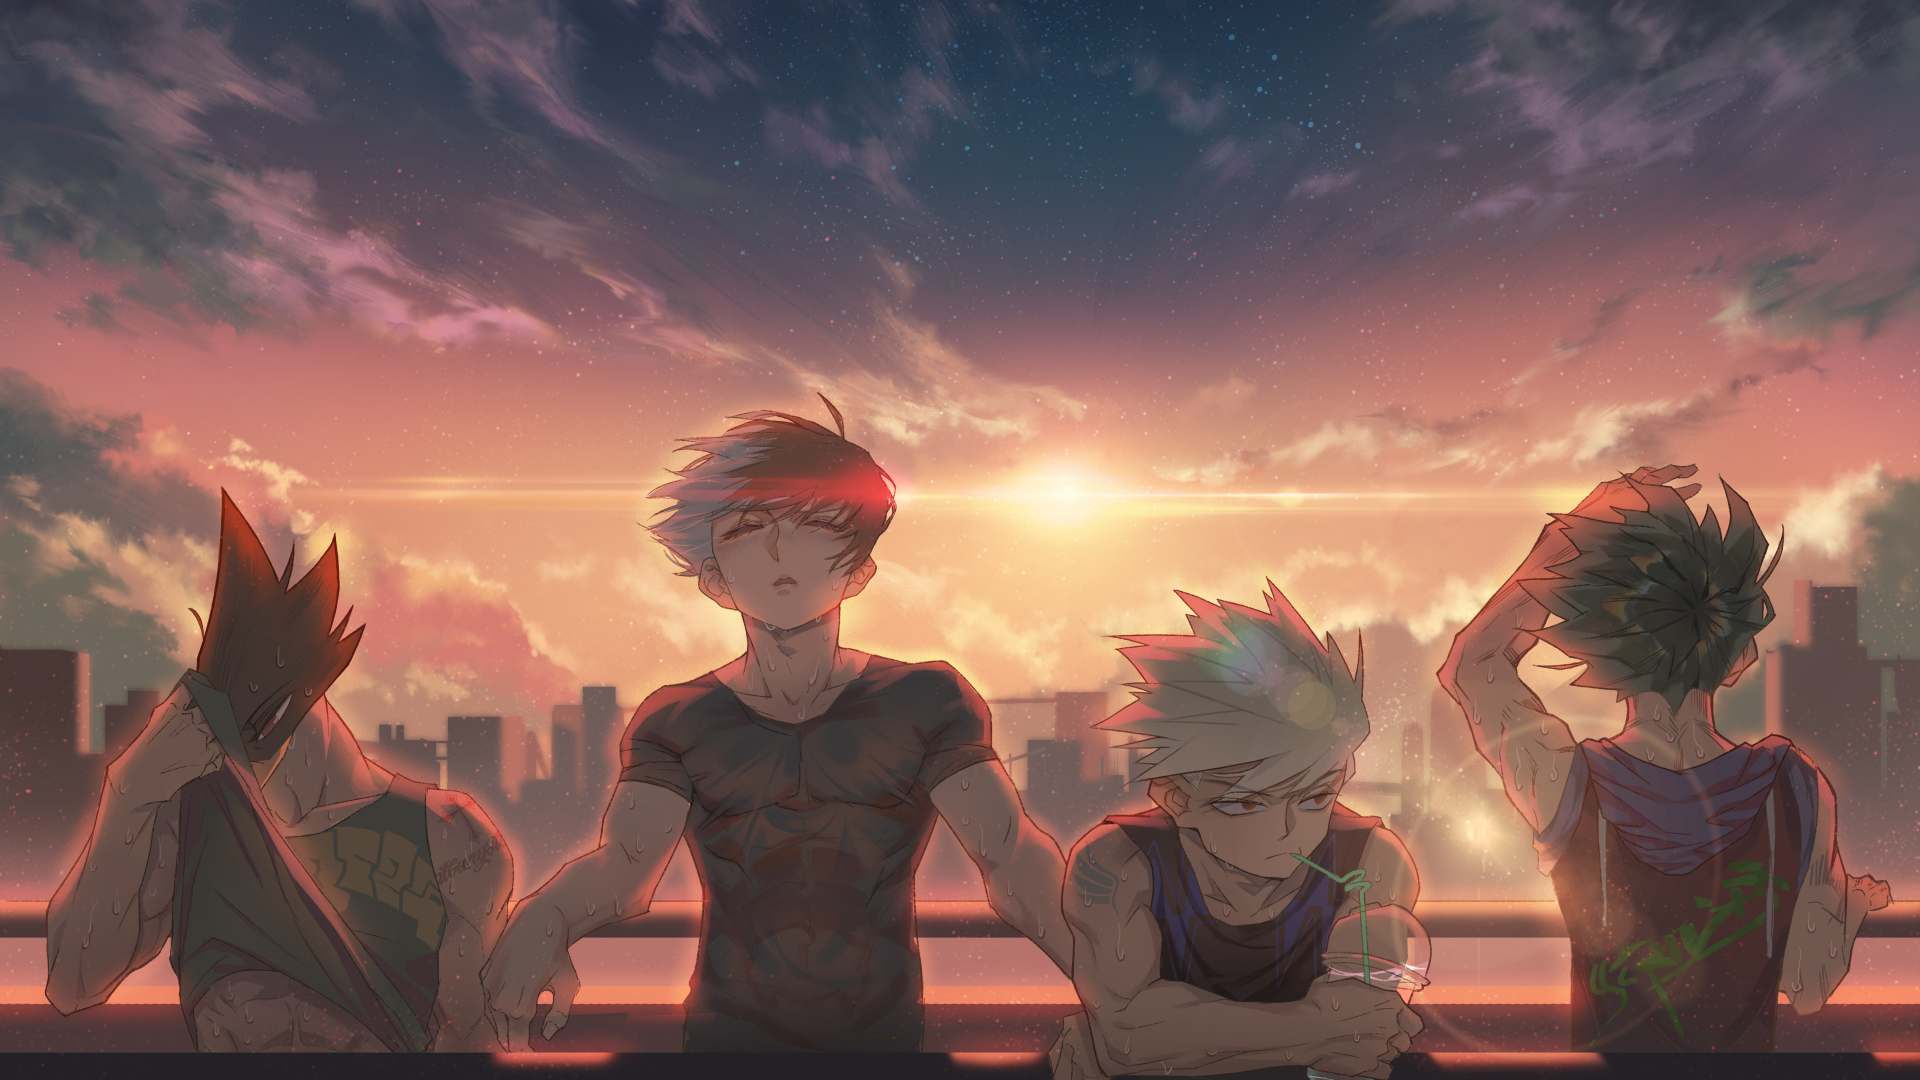 1920x1080 My Hero Academia Anime 1080p Laptop Full Hd Wallpaper Hd Anime 4k Wallpapers Images Photos And Background Wallpapers Den